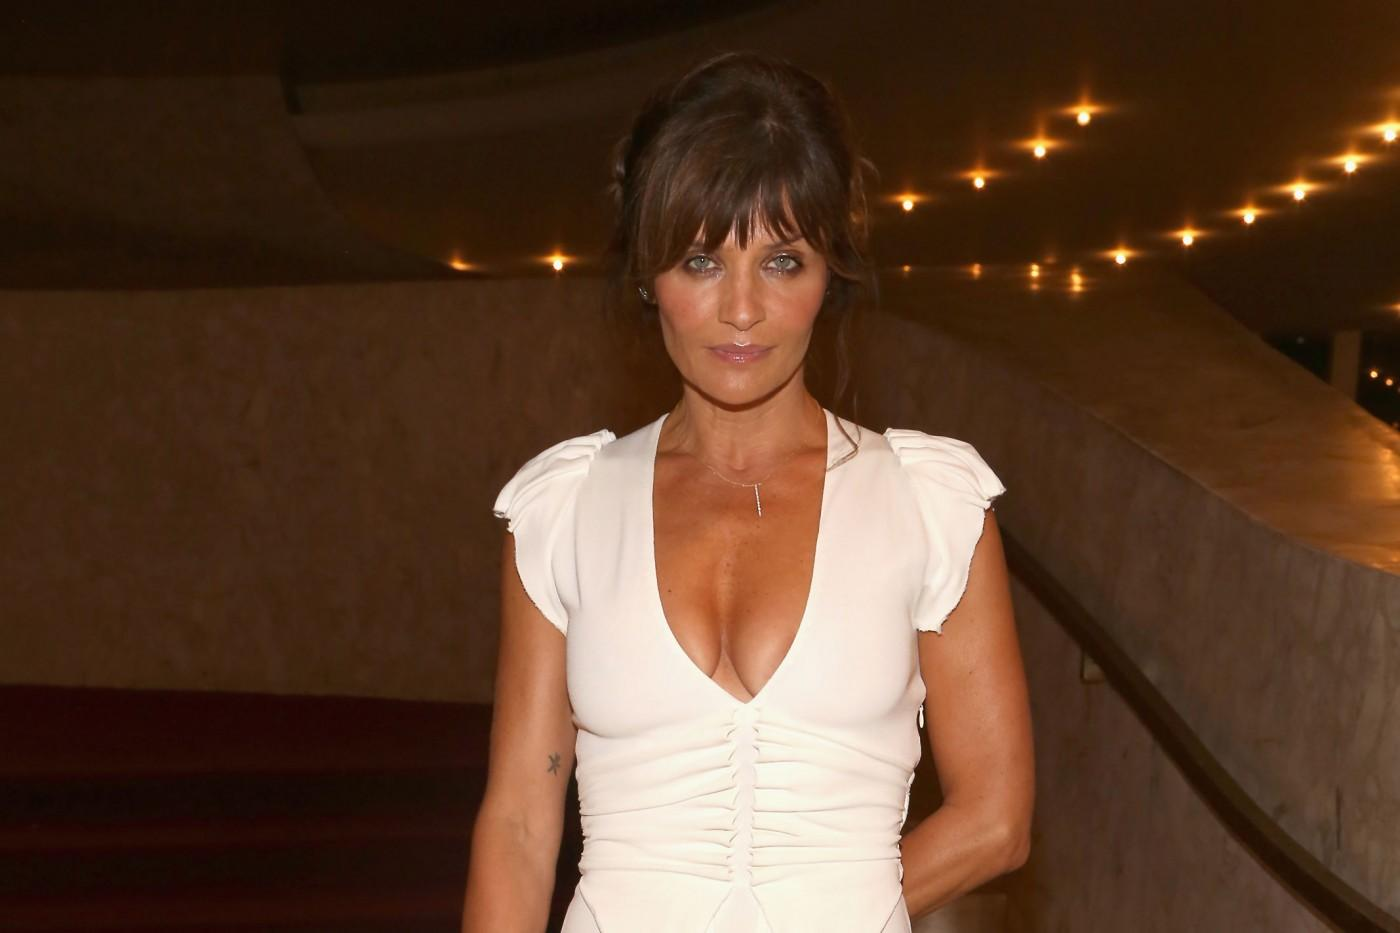 Helena Christensen nudes (93 pics), foto Topless, YouTube, swimsuit 2015